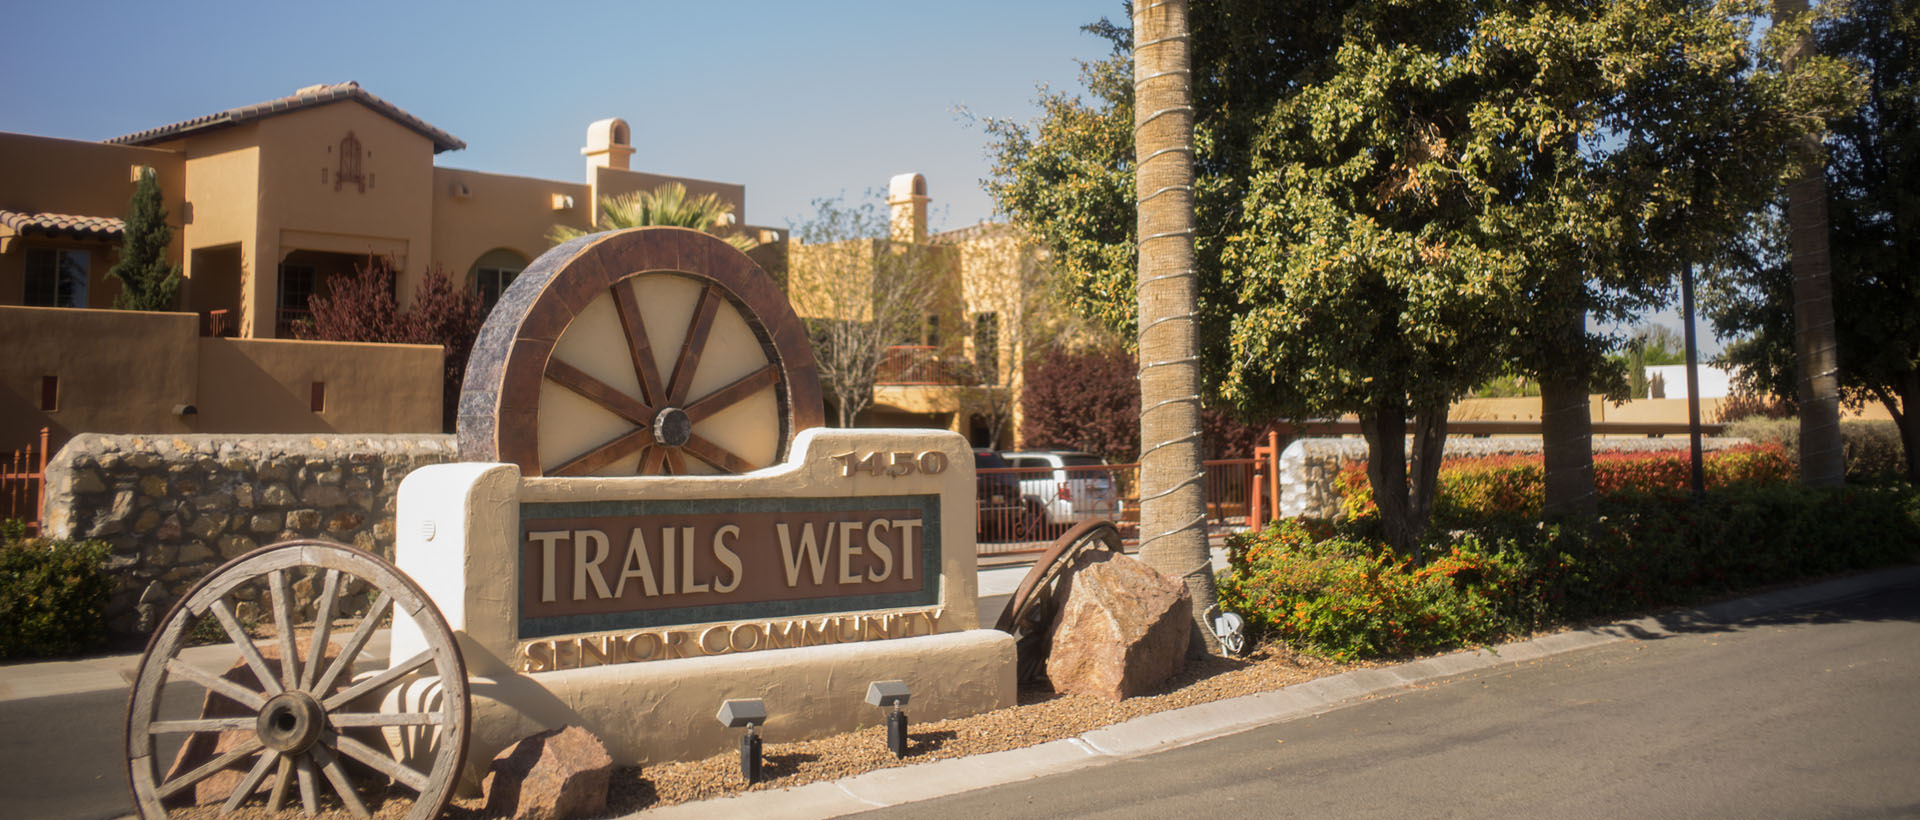 Home | Trails West